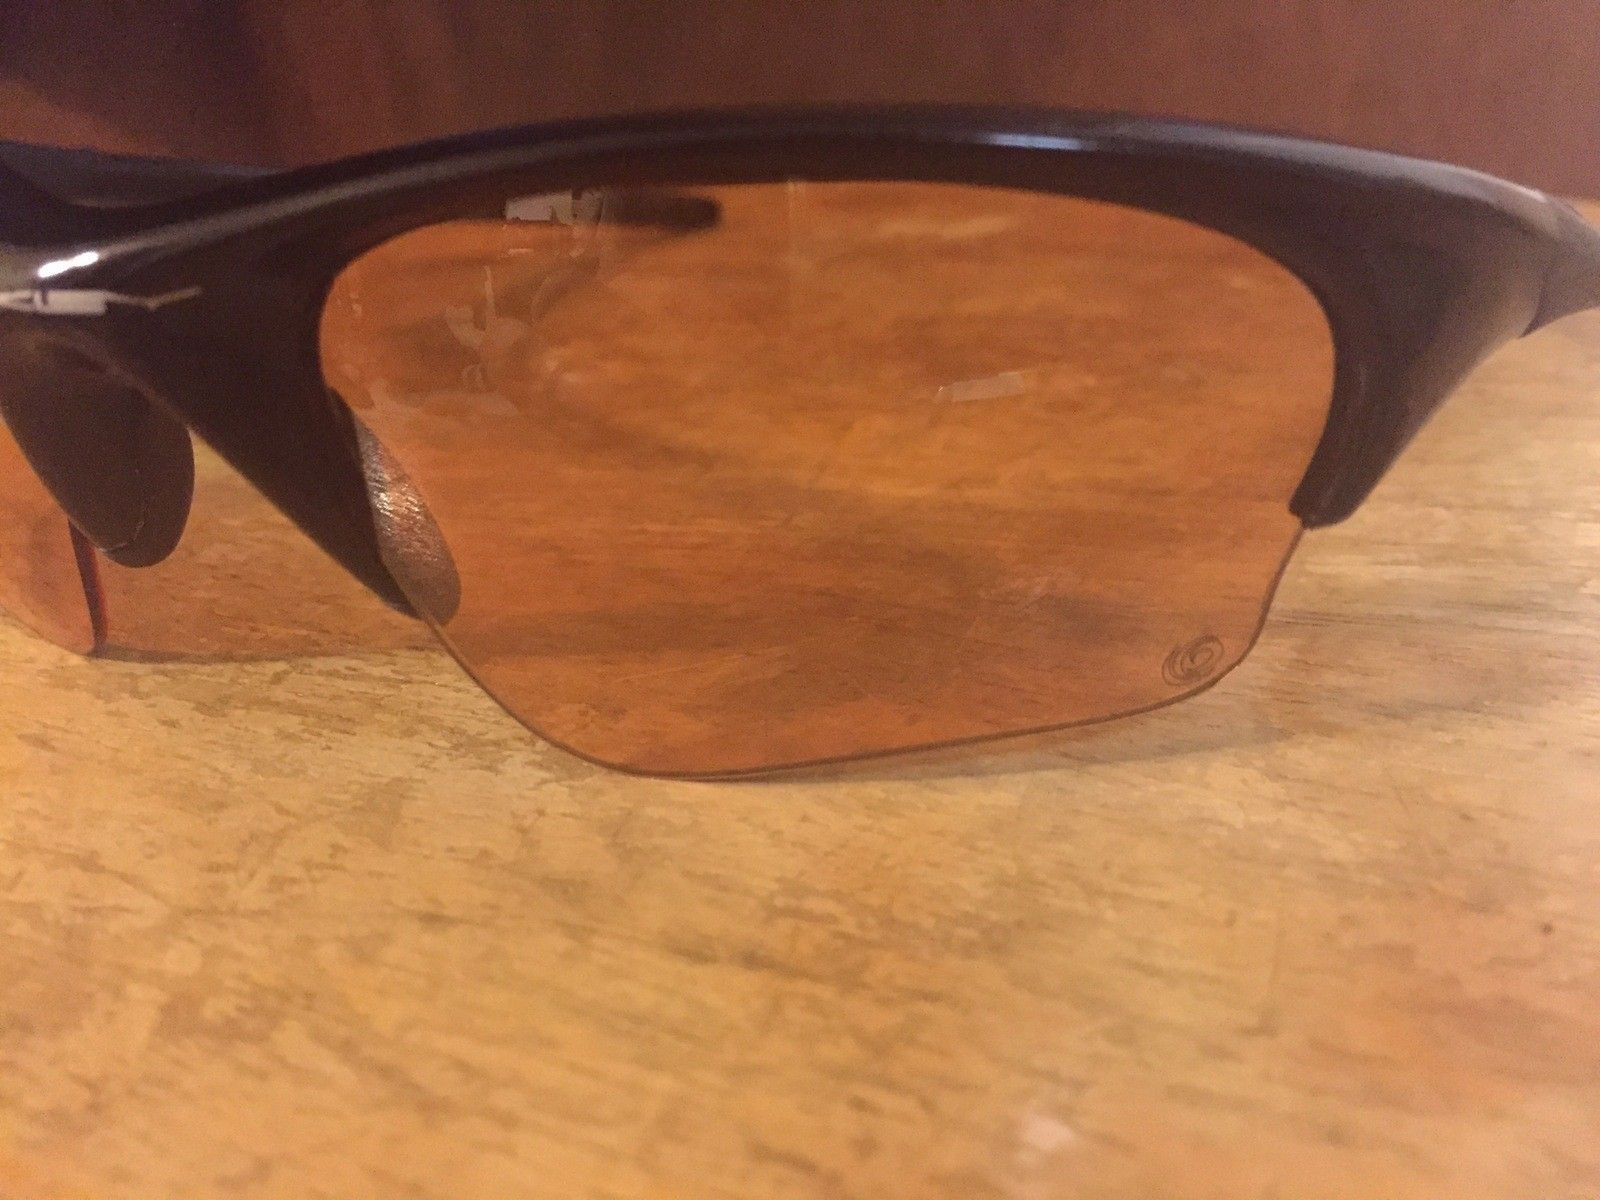 Just got a pair of Half Jackets 1.0 with transition lenses. - IMG_0058.JPG